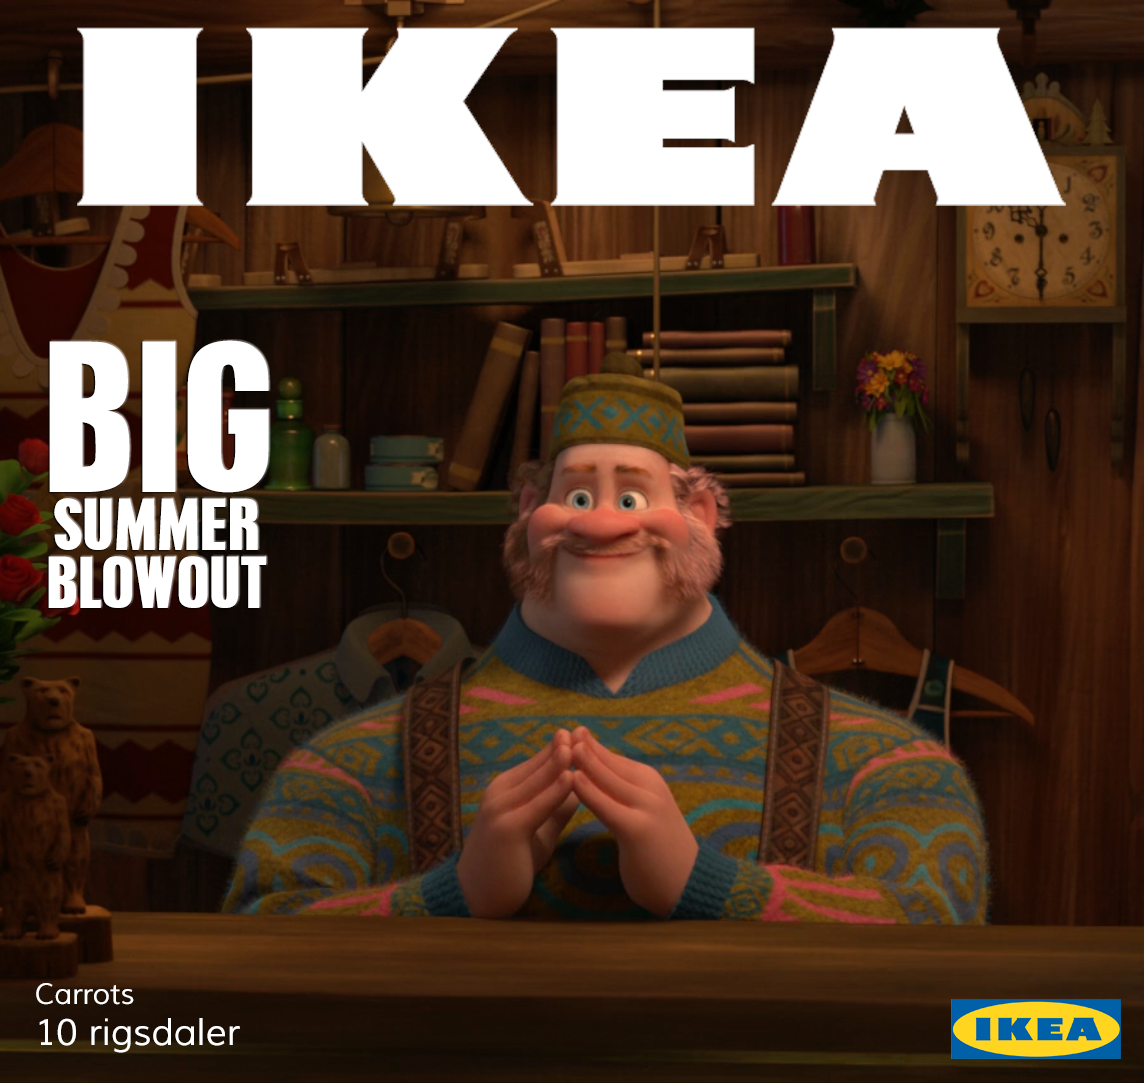 Hoo Hoo Big Summer Blowout Ikea Style This Is The Best Image Yet Frozen Funny Photos Blowout Frozen